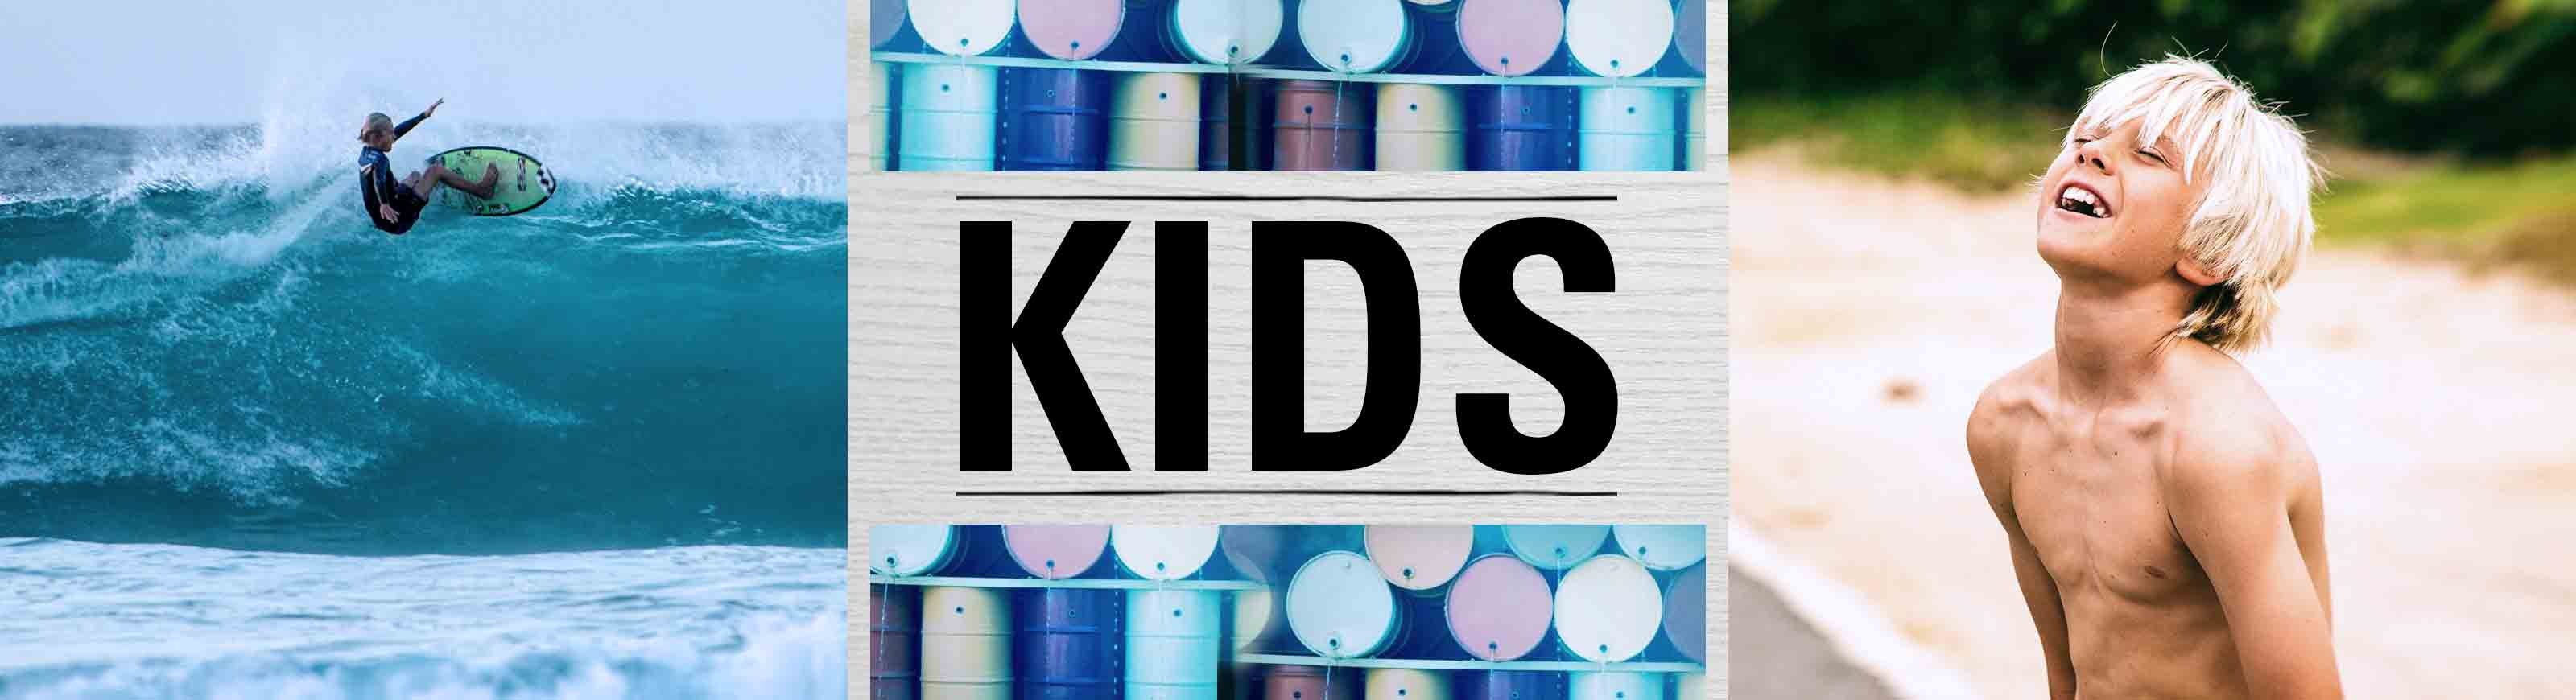 kids category banner